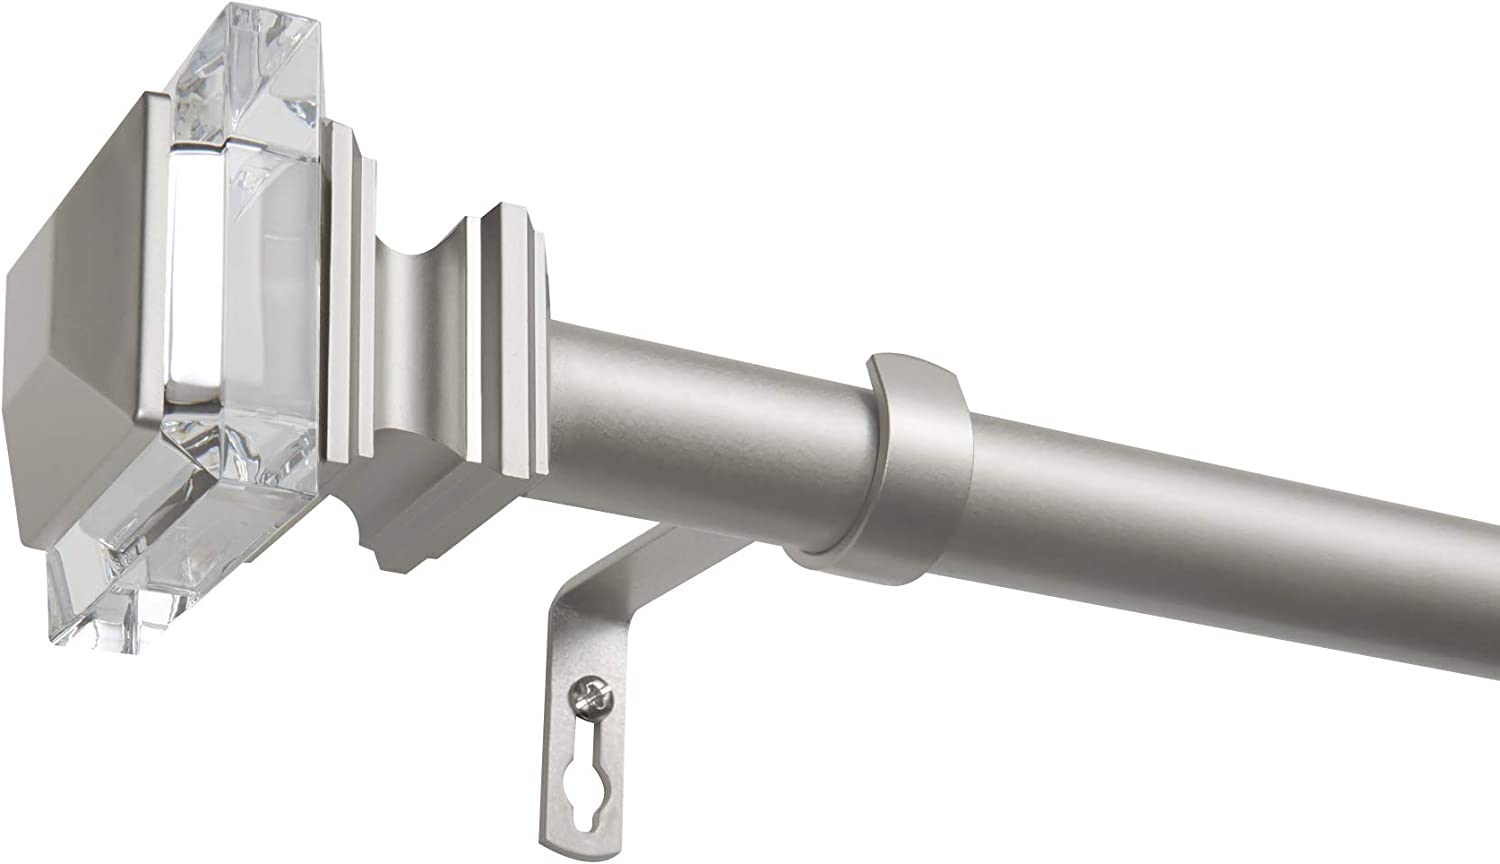 Matte Silver Exclusive Home Curtains Prism Curtain Rod and Finial Set 36-72